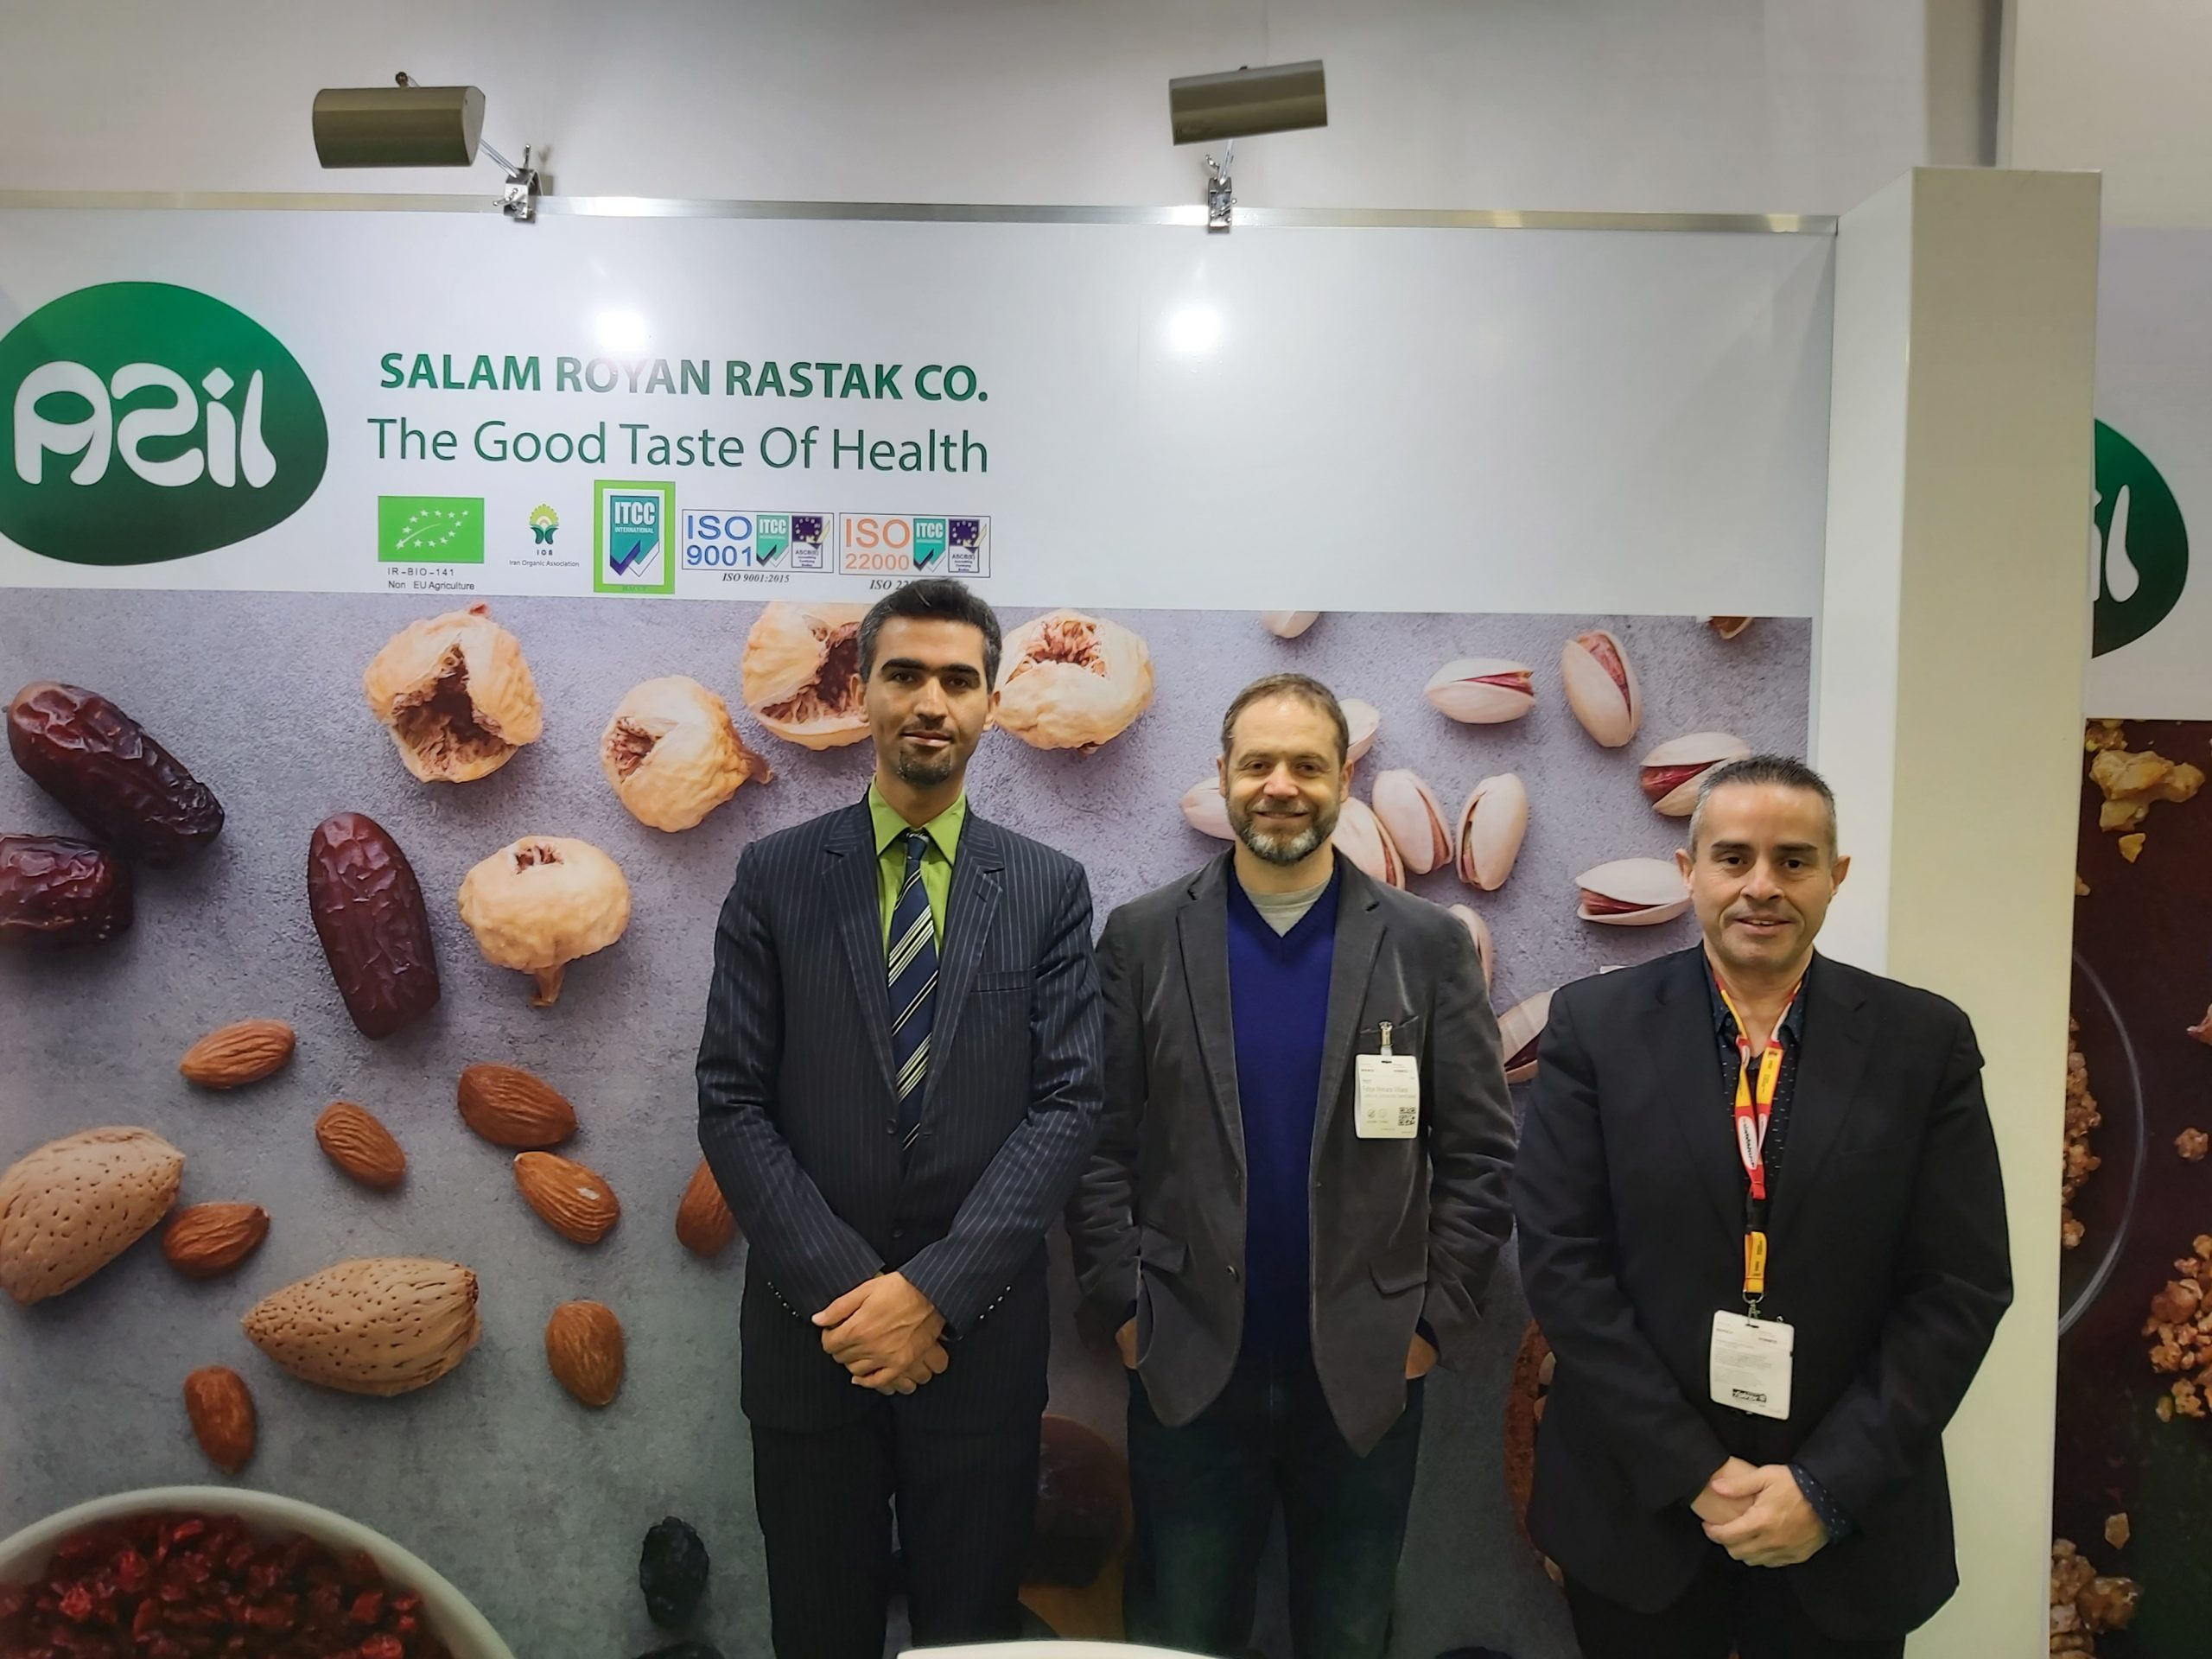 20200215 093734 scaled - Salam Rouyan Rastak CO. presence in Biofach 2020 -Germany